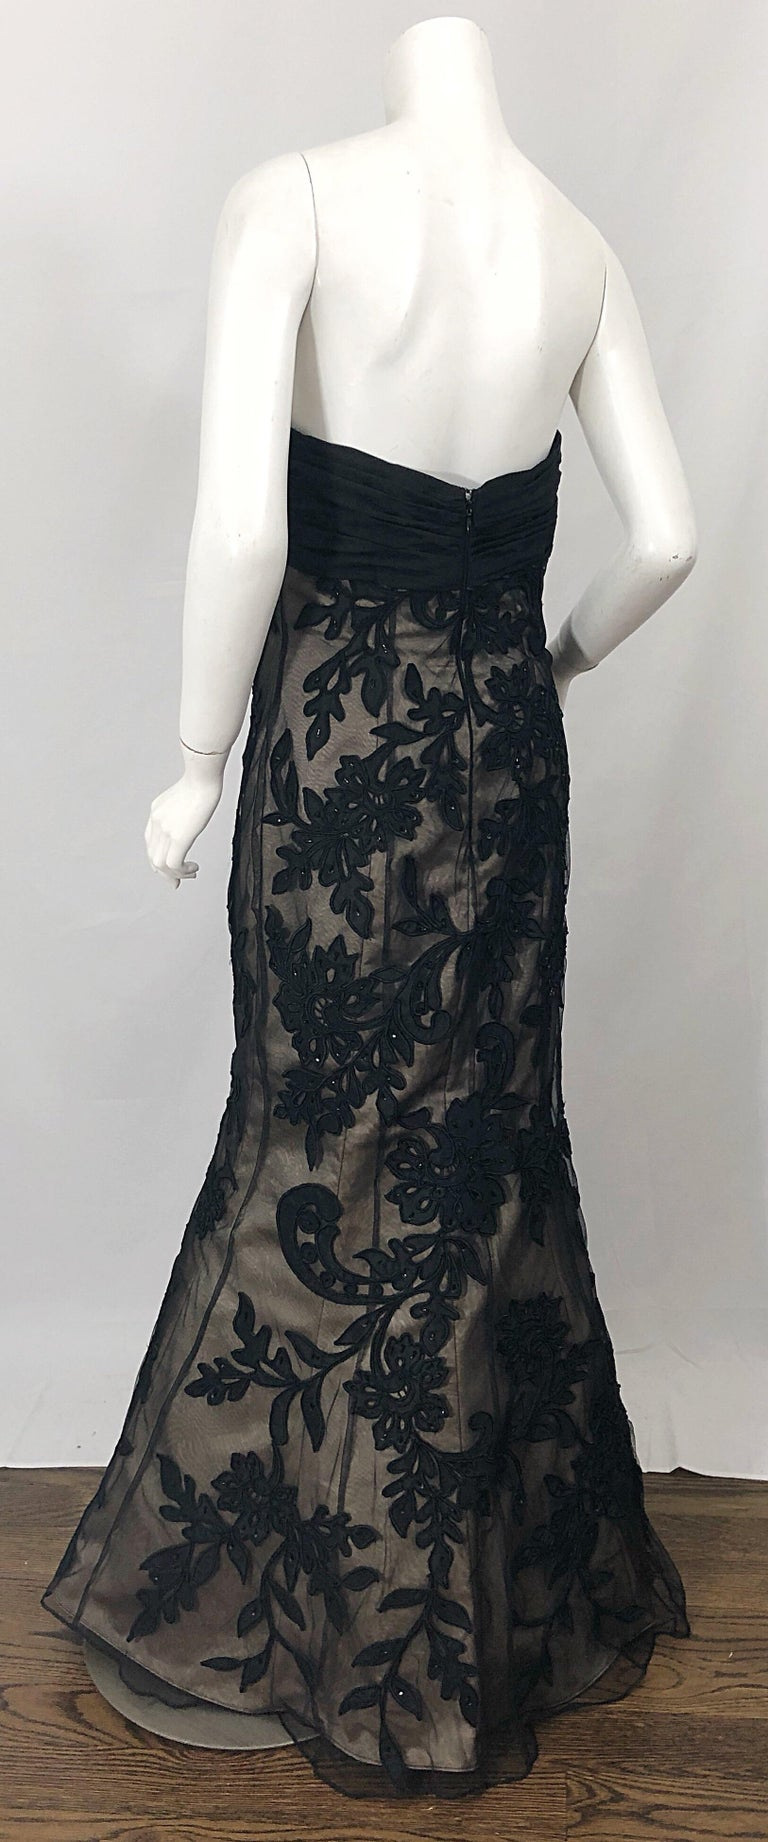 Vintage Bill Blass Couture Size 4 / 6 Black + Nude Beaded Strapless Mermaid Gown For Sale 7